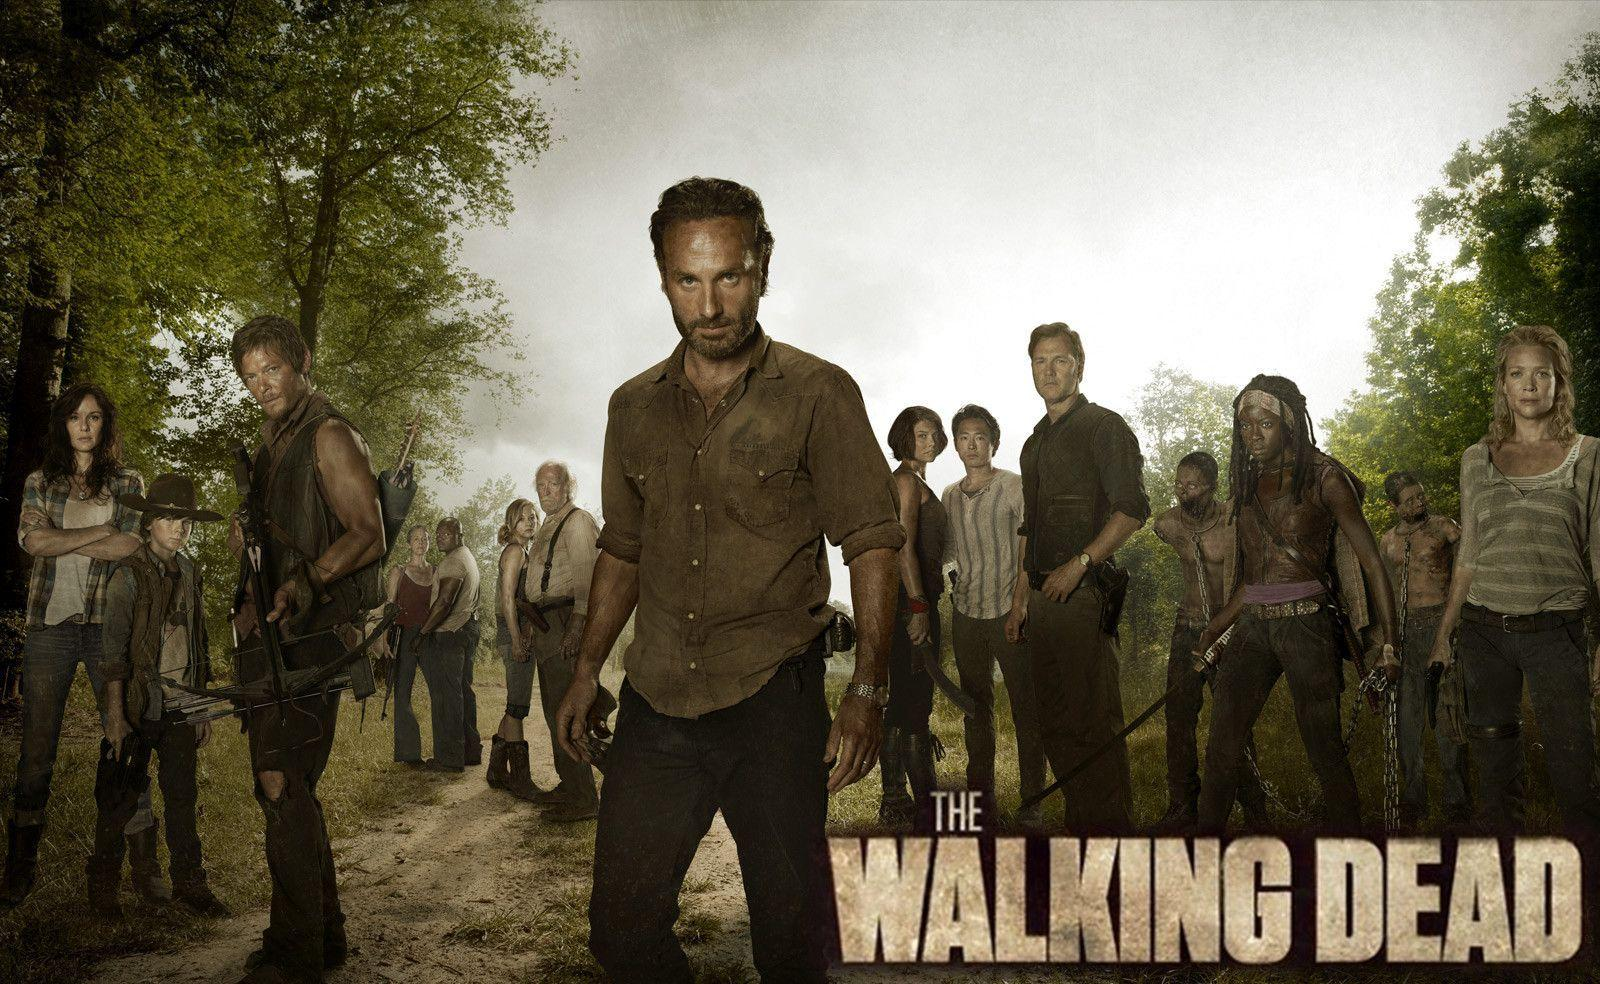 Walking Dead Wallpaper For Android: The Walking Dead Wallpapers HD